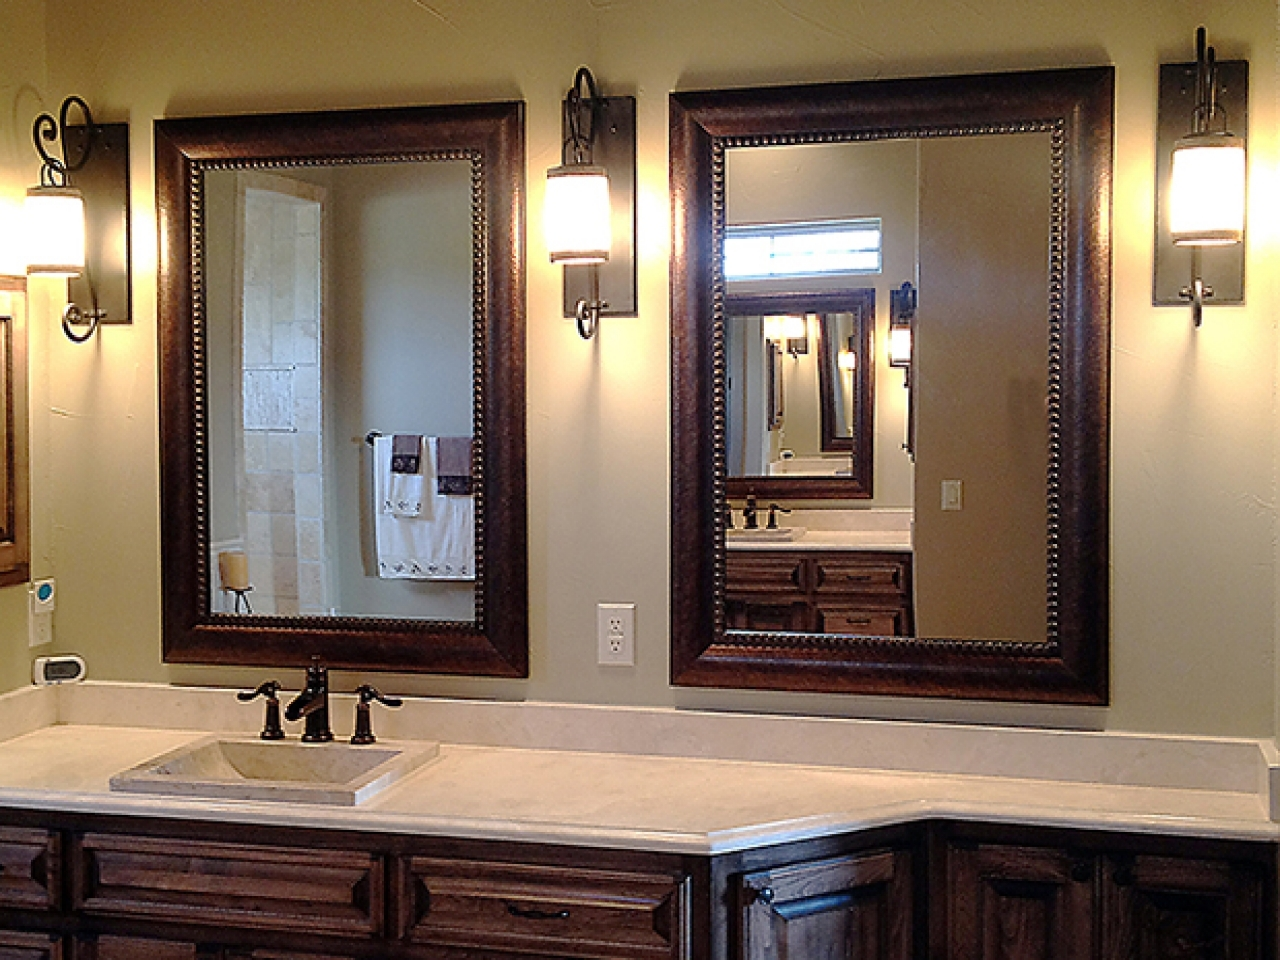 Fancy Framed Bathroom Mirrorsfancy framed bathroom mirrors images 85 on with framed bathroom